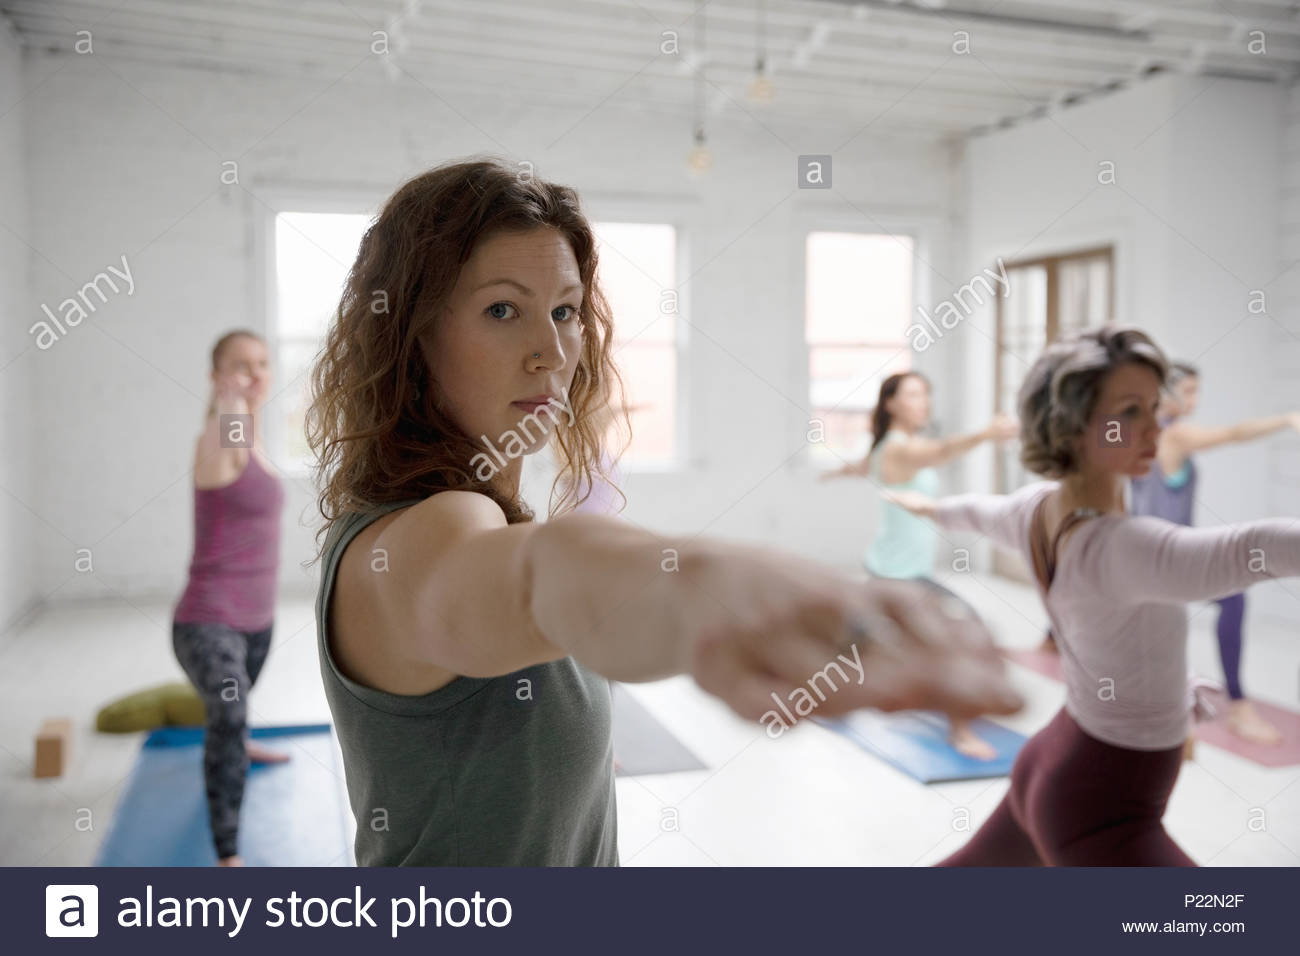 Focused woman practicing yoga warrior two pose in yoga class - Stock Image